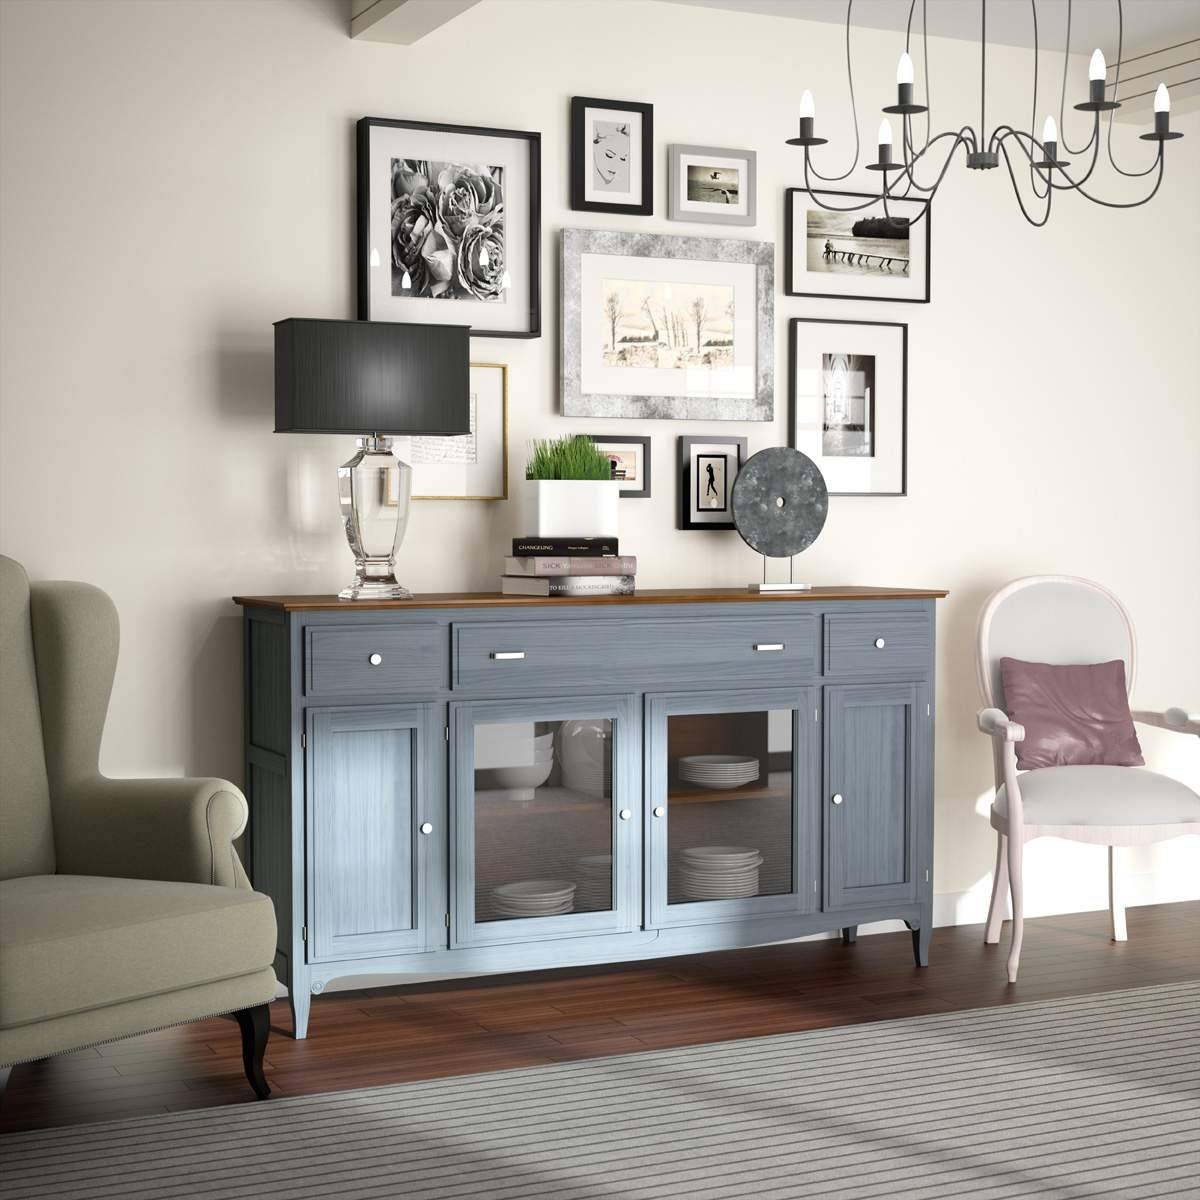 Sideboards. Astounding Mirrored Buffet Cabinet: Mirrored-Buffet regarding Small Mirrored Sideboards (Image 18 of 30)